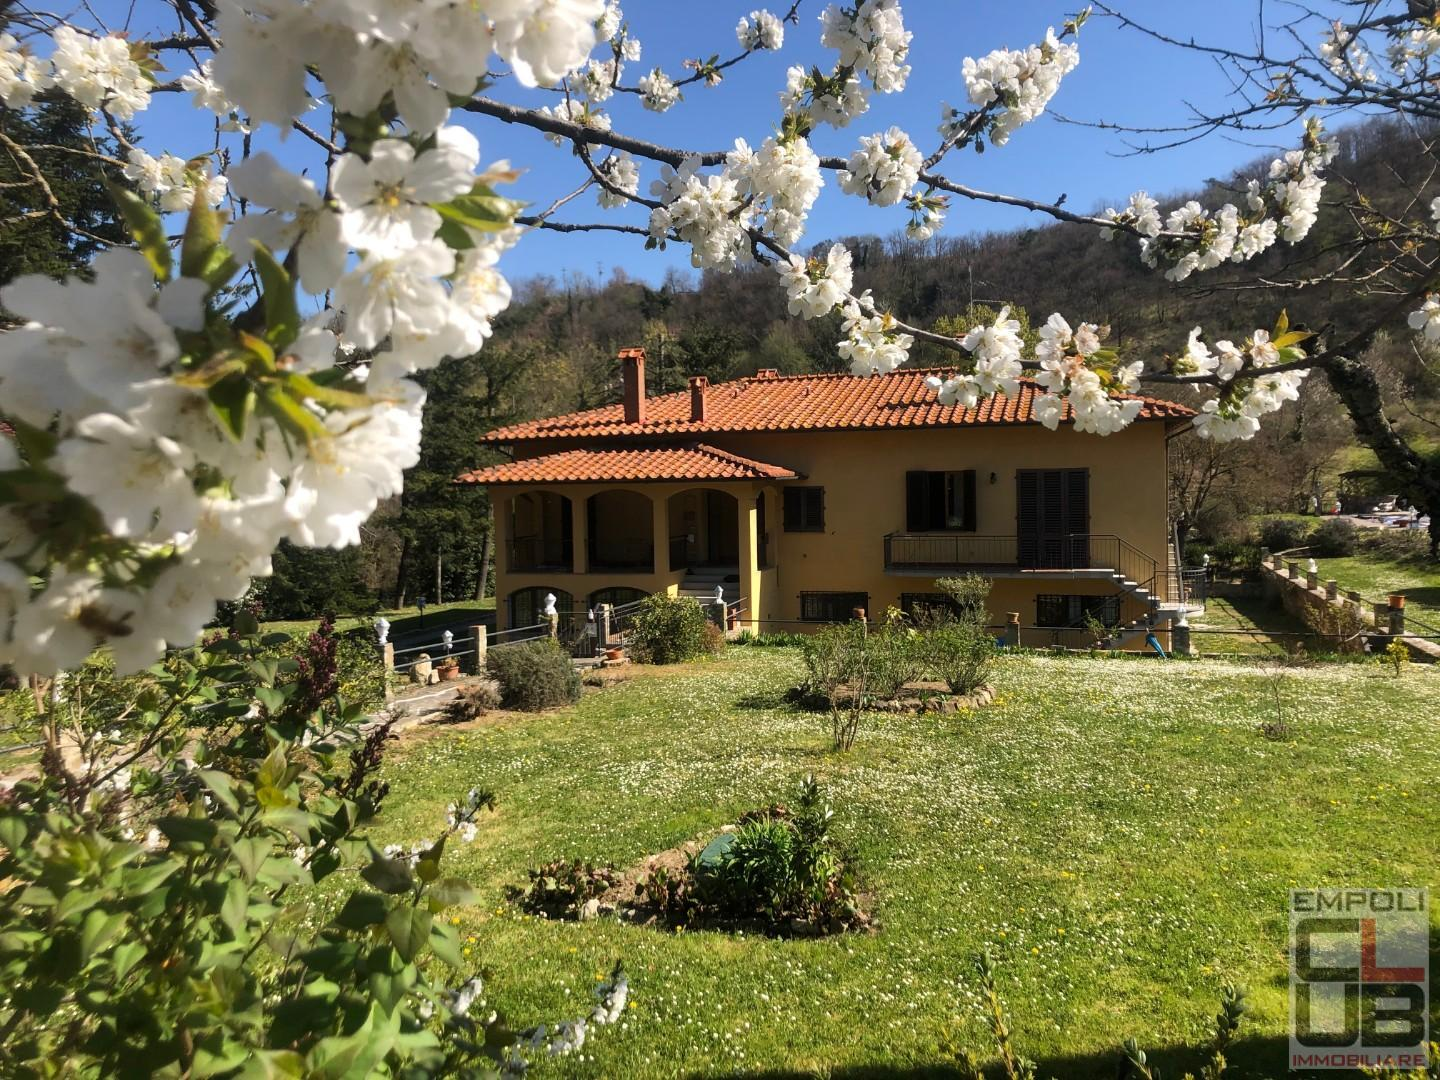 Villa for sale in Barberino di Mugello (FI)